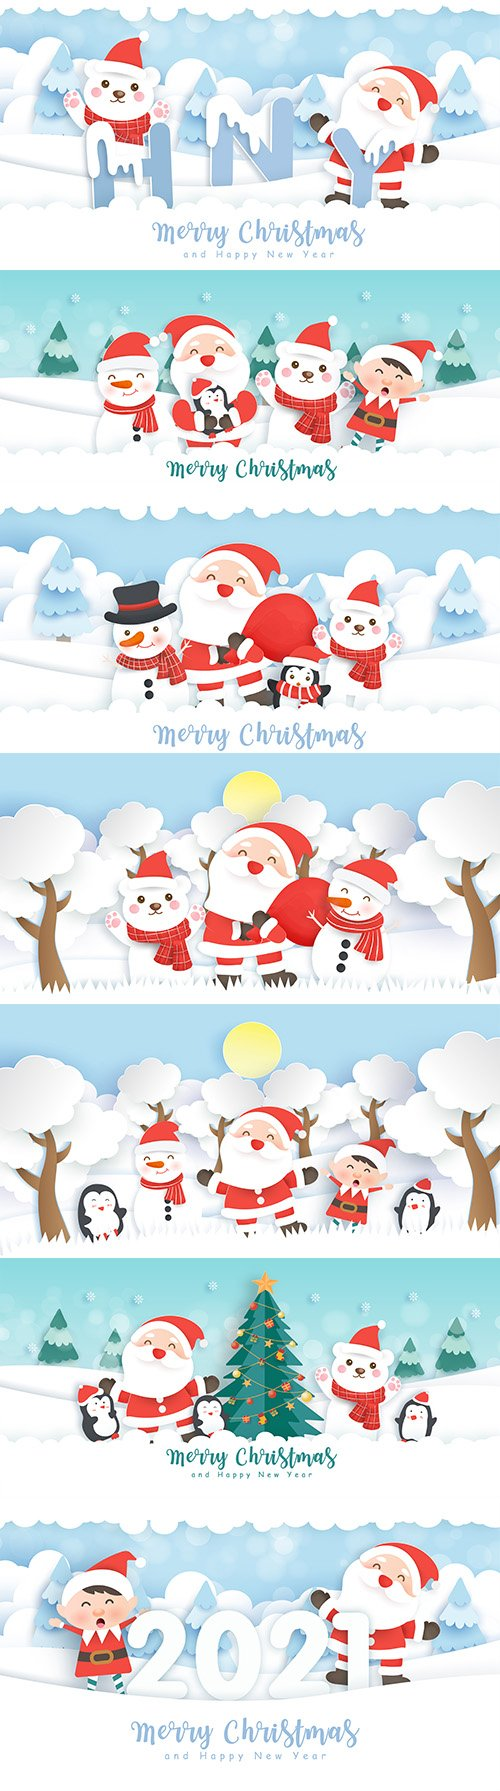 Christmas and New Year's Eve banner with Santa Claus and friends